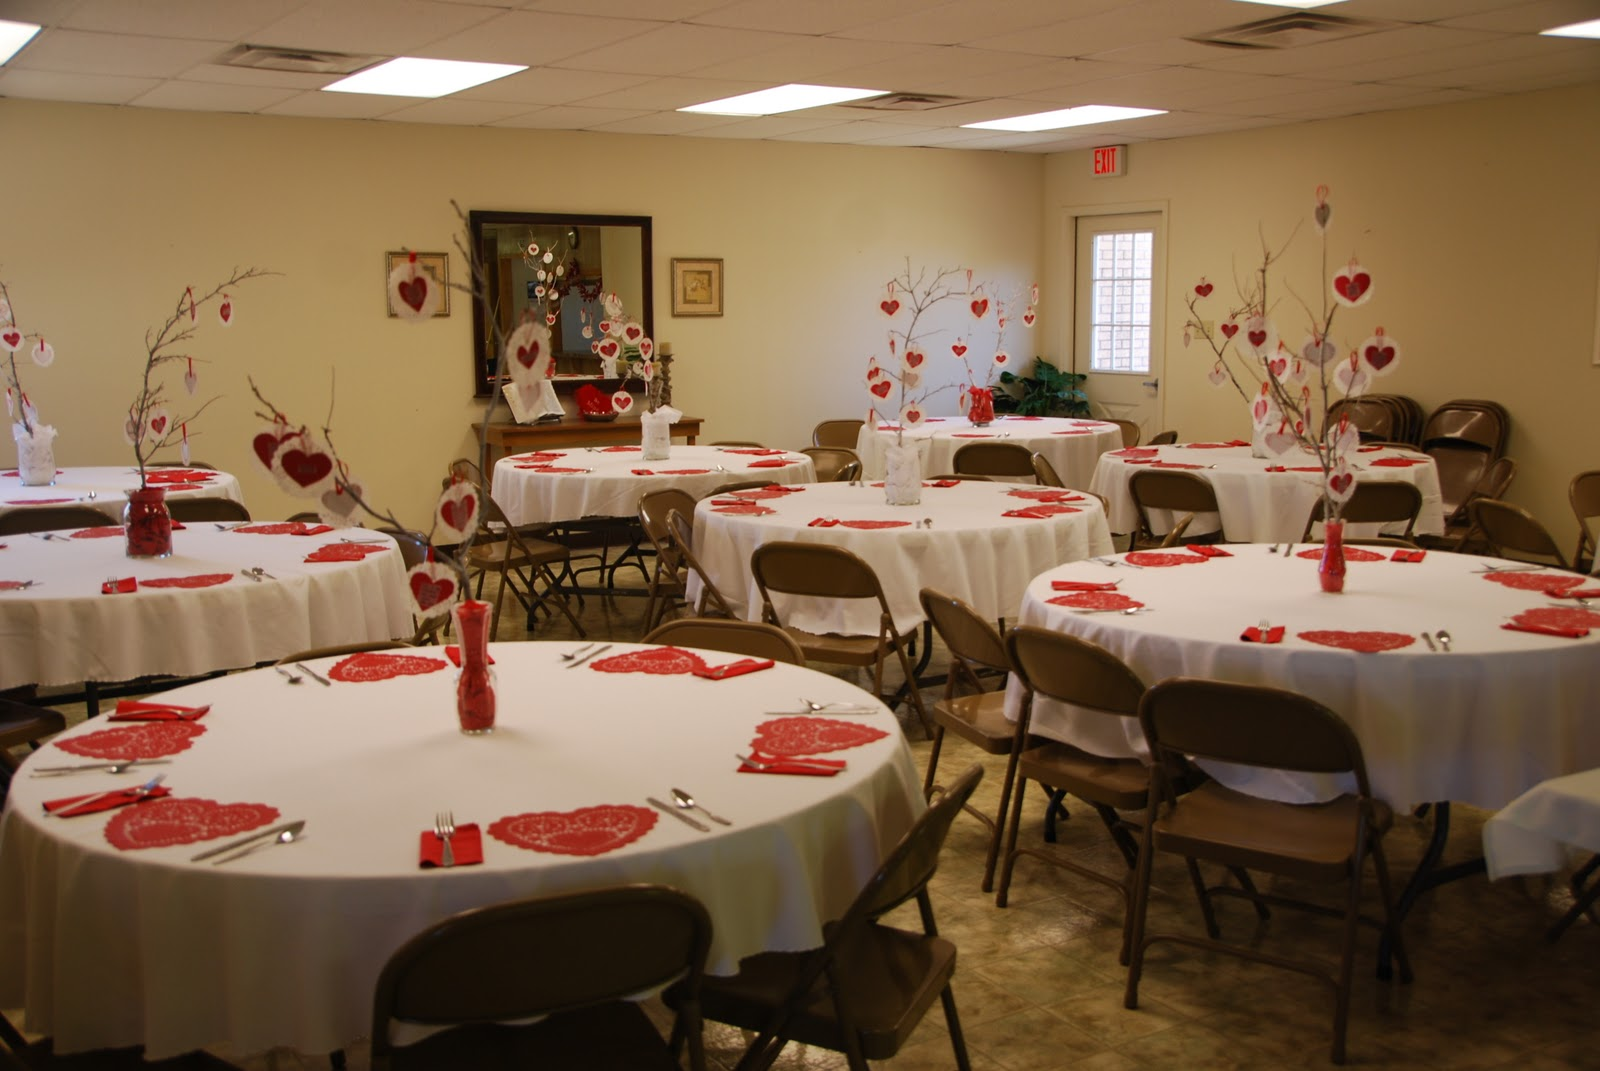 Valentines Banquets  For The Young And Old And InBetween. 1600 x 1071.Valentine's Day Ideas For Couples At Church